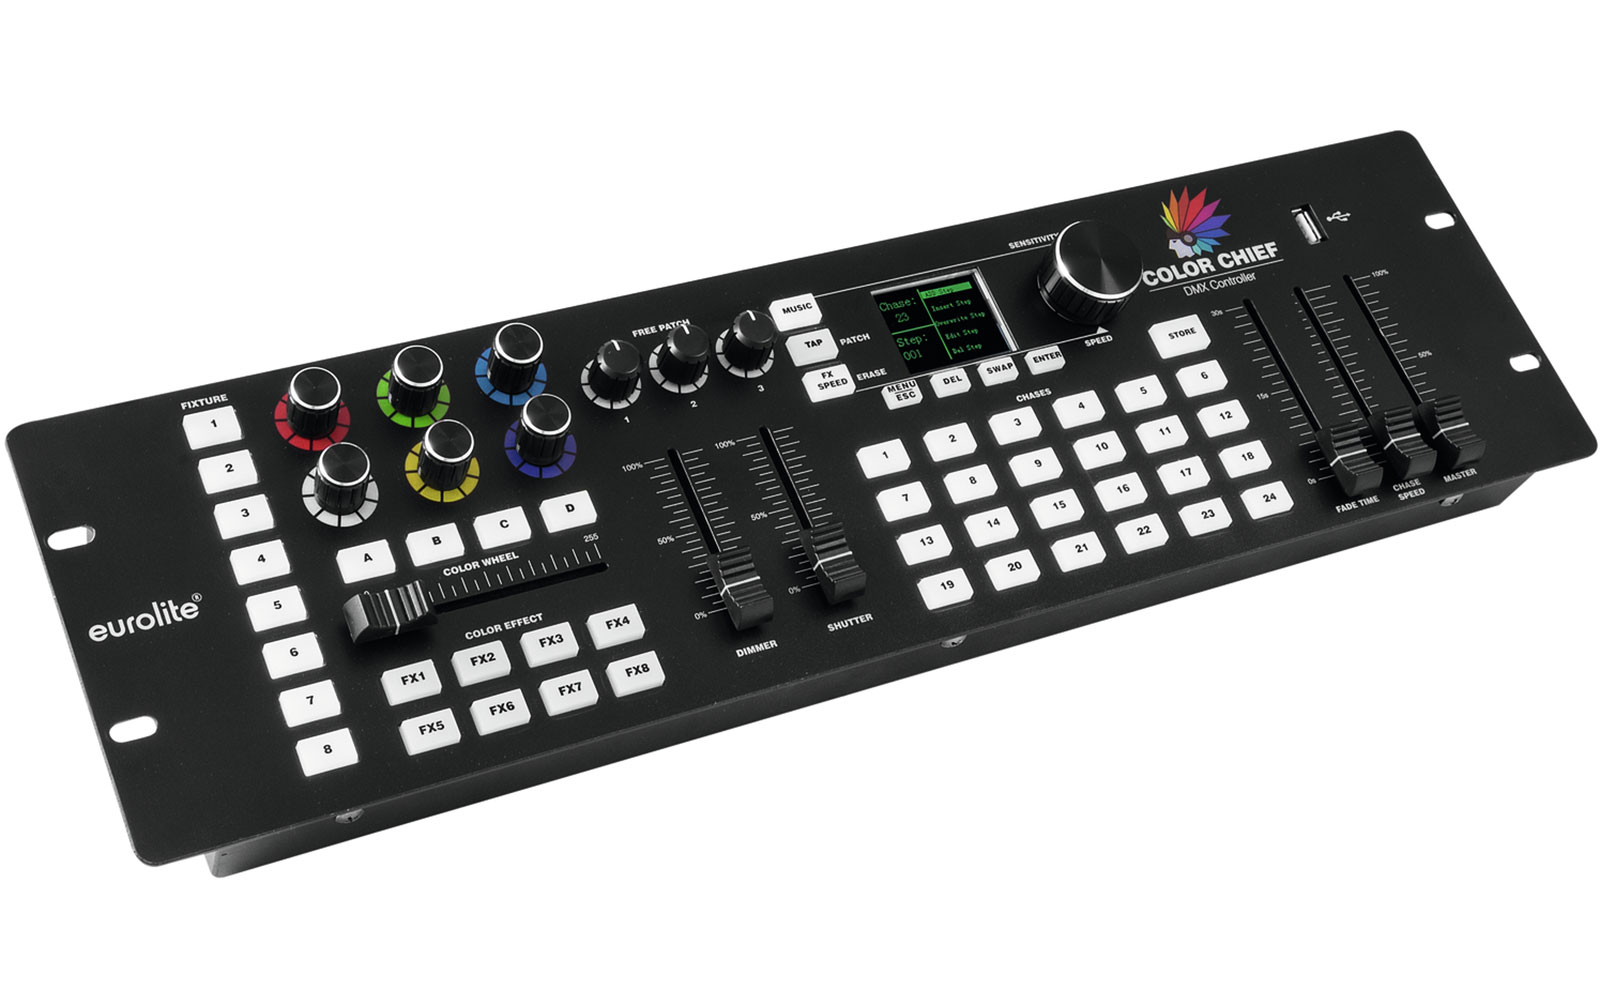 eurolite-dmx-led-color-chief-controller